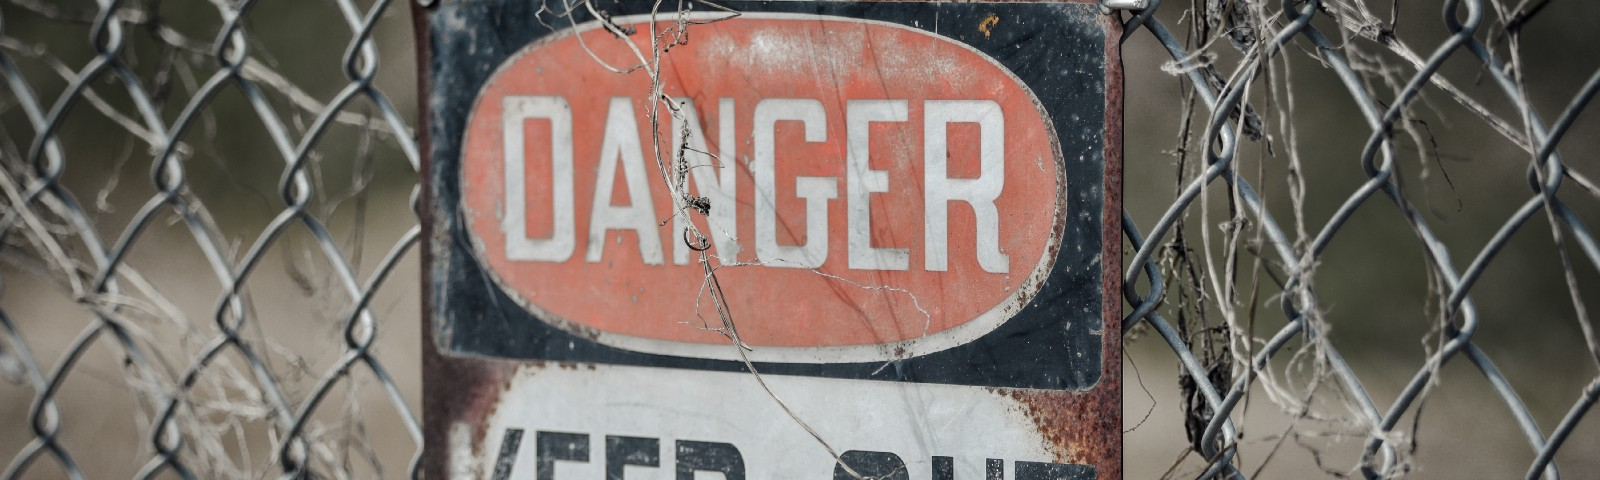 A sign on a fence: Danger Keep Out